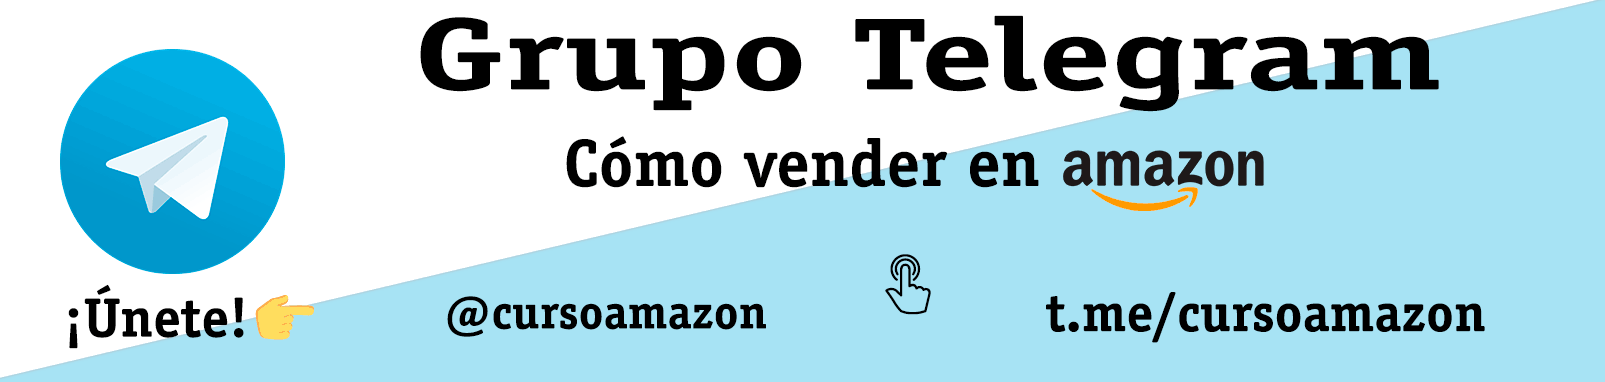 Grupo Telegram del curso para vender en Amazon